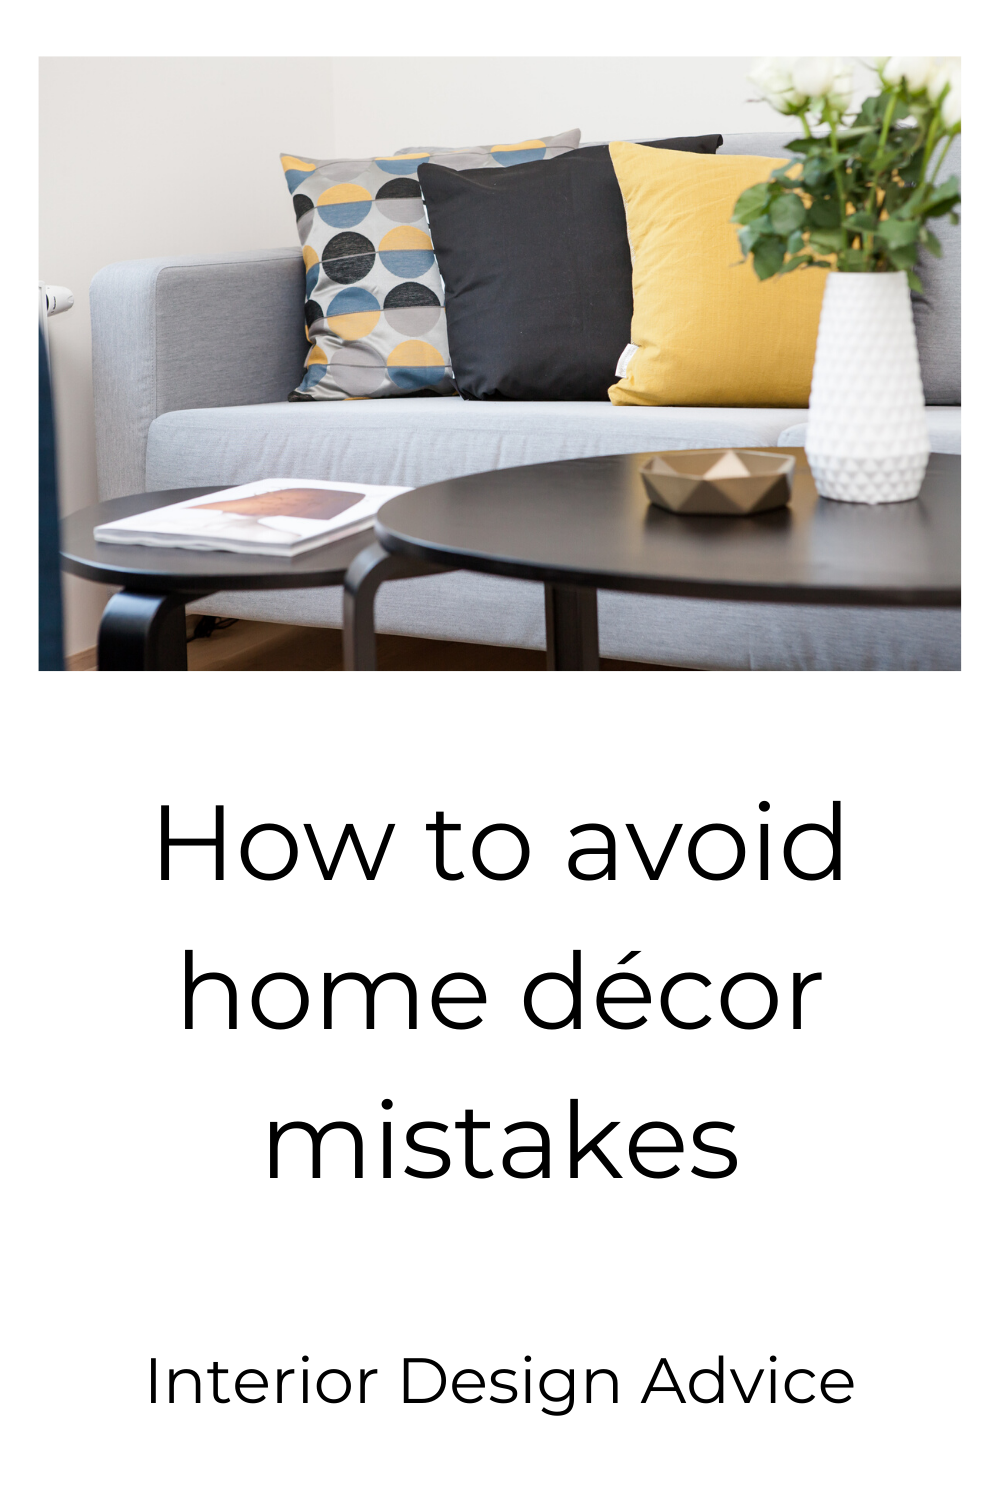 Decorating your home can be so enjoyable.  Sometimes in all the excitement people can make very simple mistakes which can be costly and result in having to live in a space with décor you dislike.  I will go through how to avoid home décor mistakes and ensure you love the space you have created.   #interiordesigntips #homedecorideas